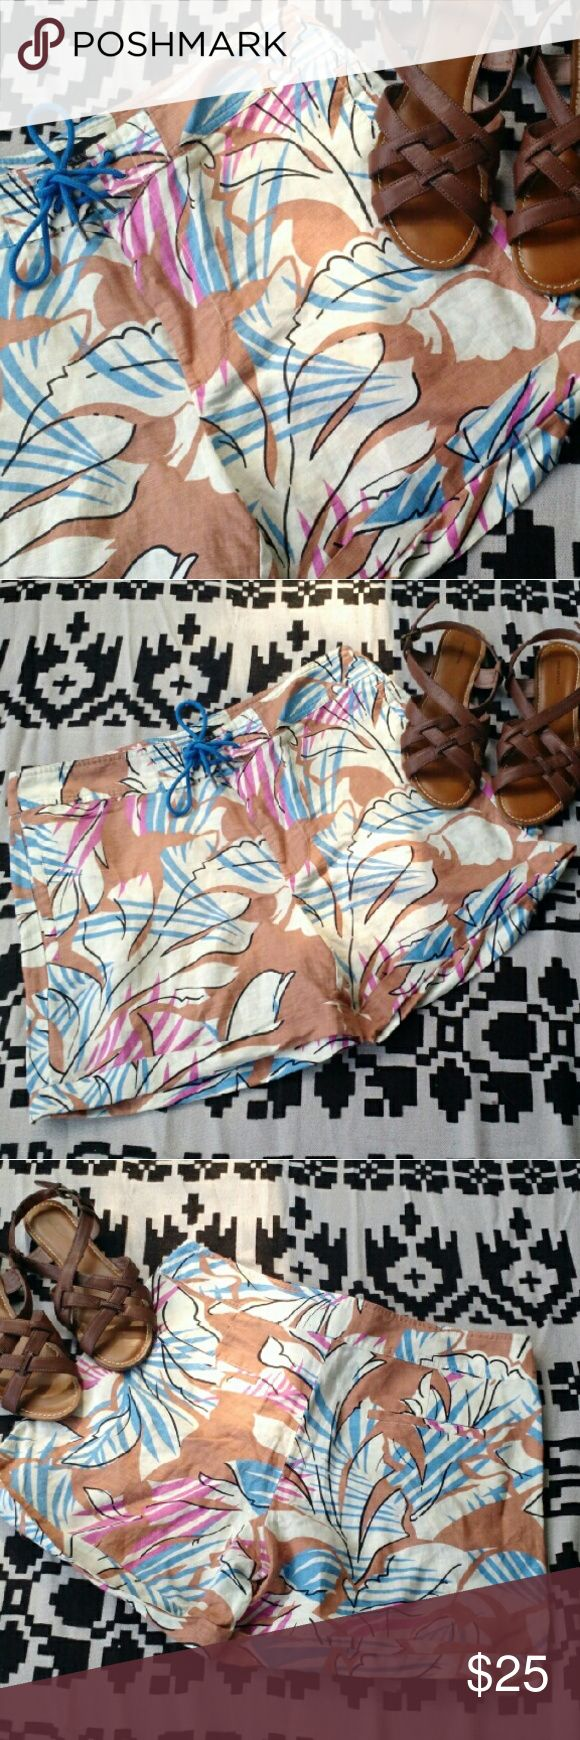 """J. Crew Linen Cotton Blend Floral Shorts Pre-owned, but in excellent condition. J. Crew Desert Oasis shorts have a 5"""" inseam. No flaws. Light fun short perfect for days in paradise.   Offers are always welcome!  E&T J. Crew Shorts"""